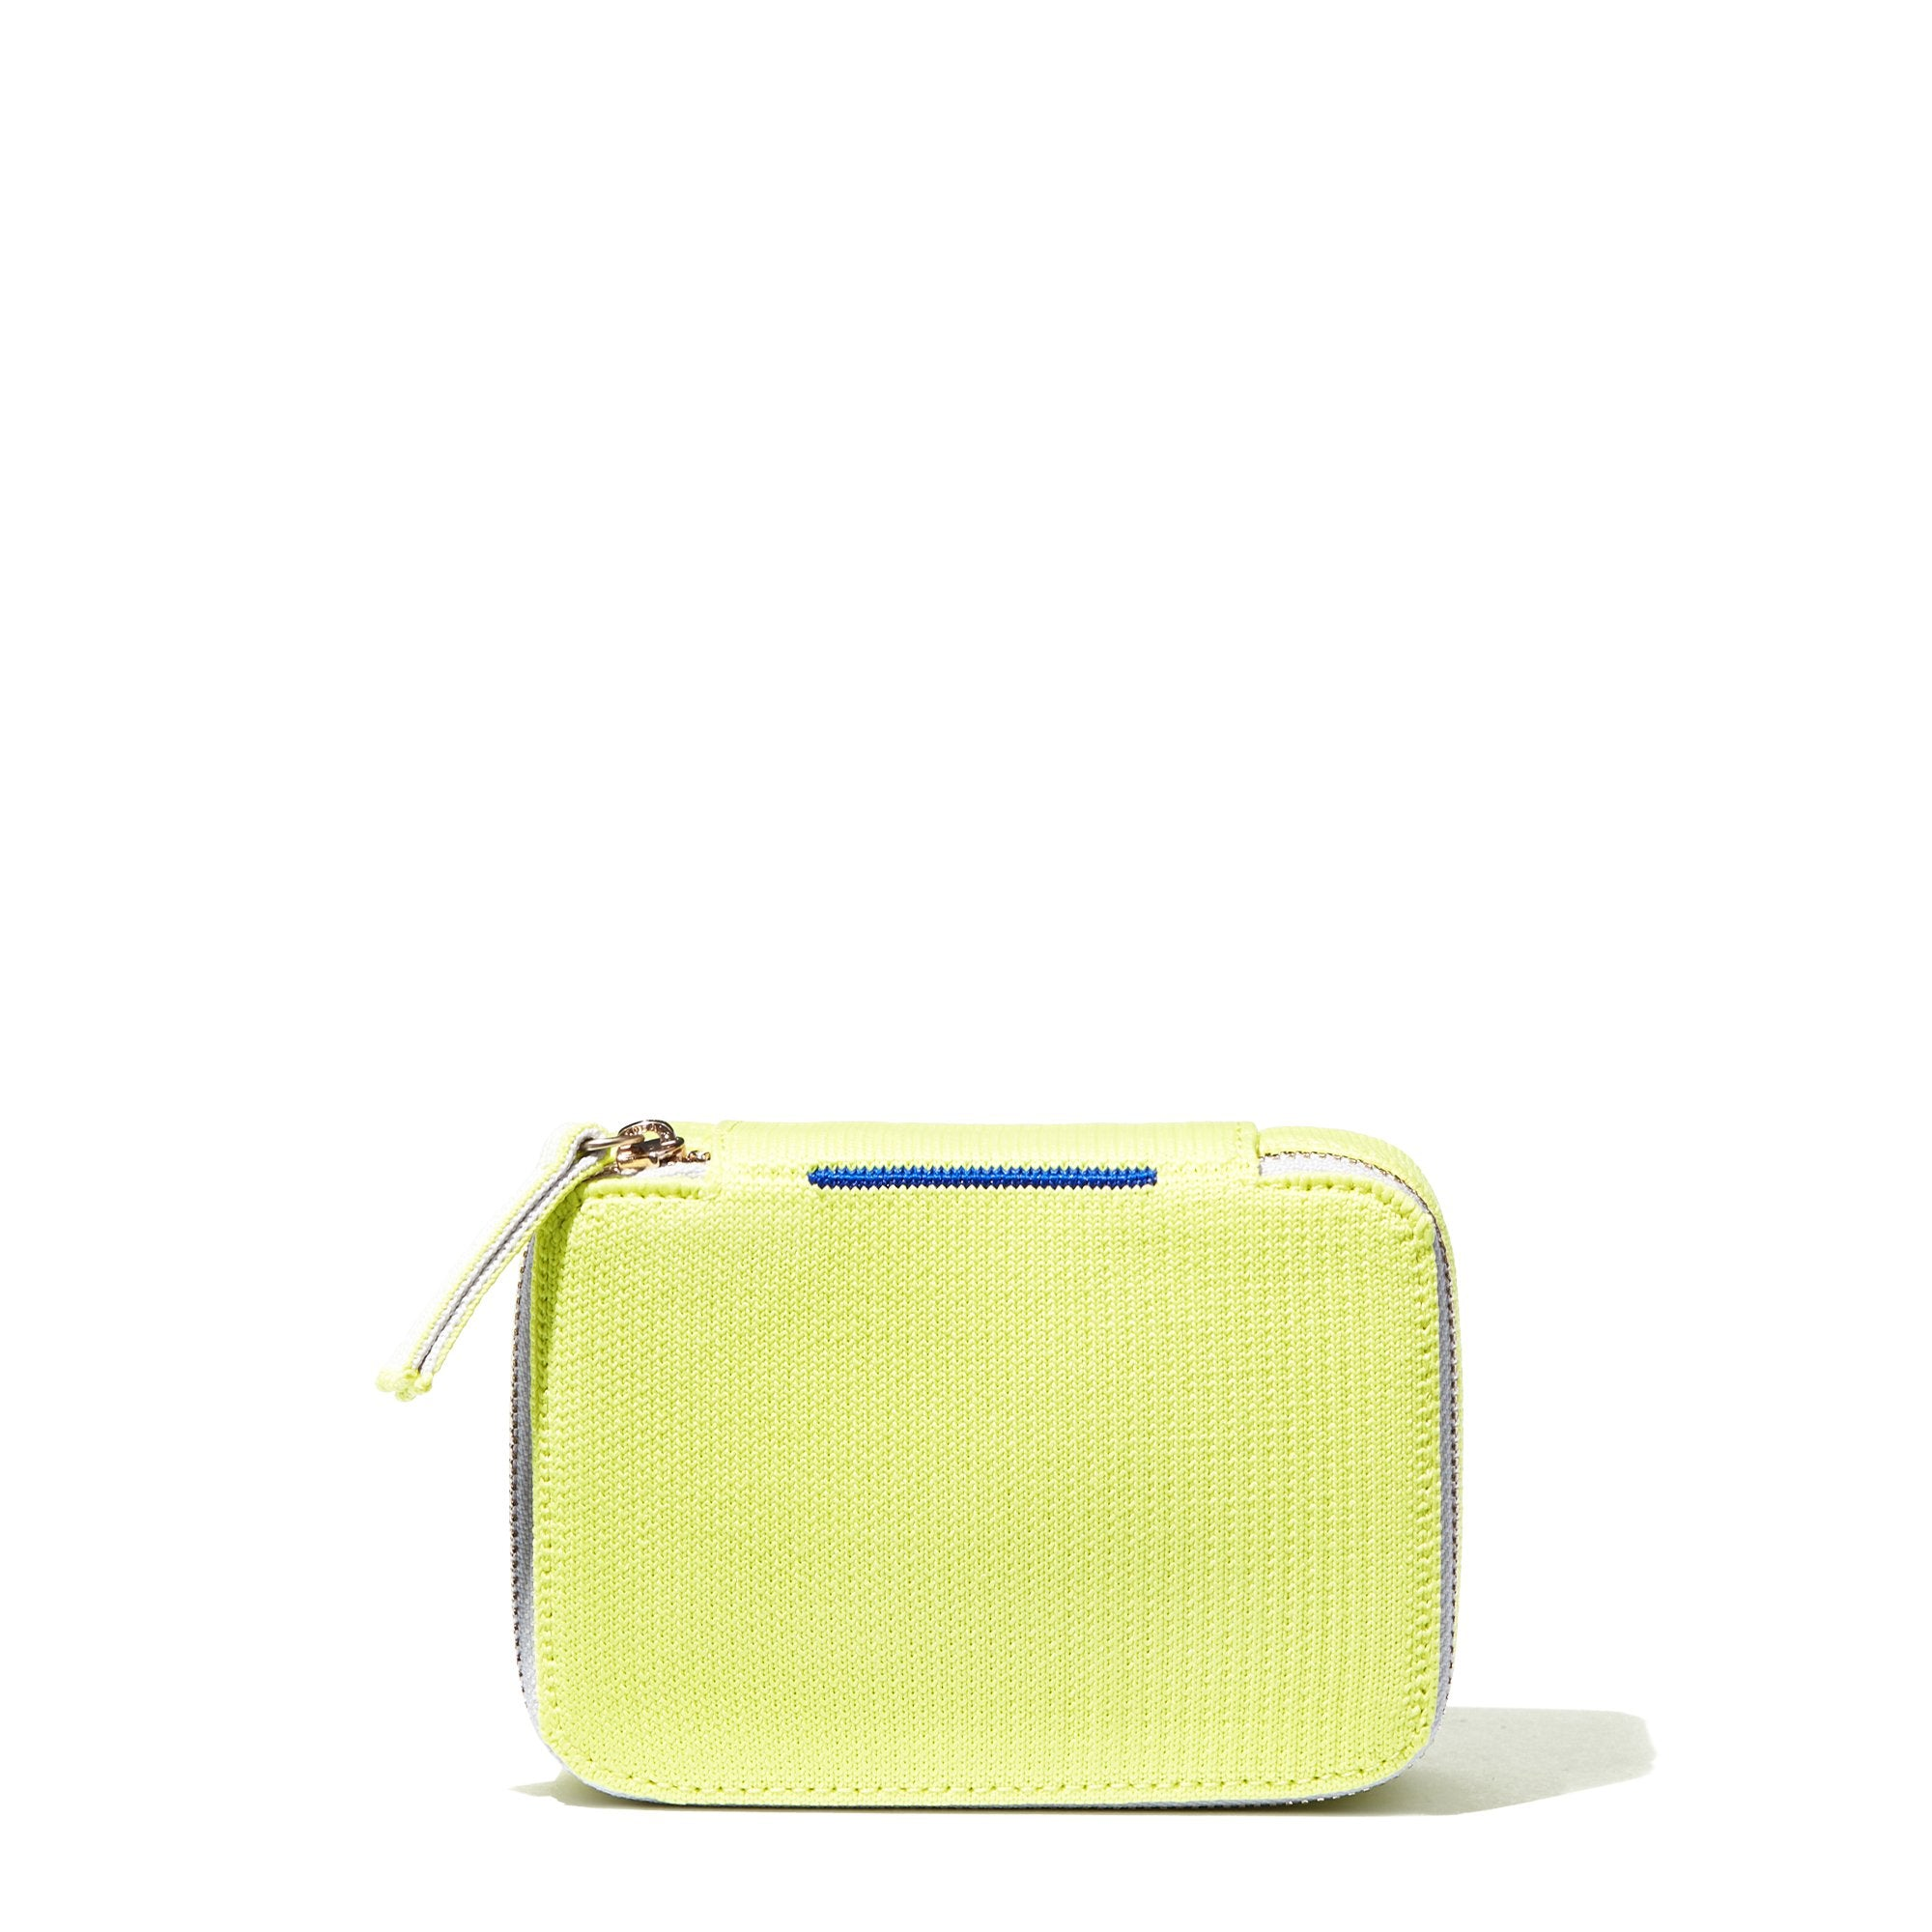 The Mini Catchall in Neon Lime shown from the front.